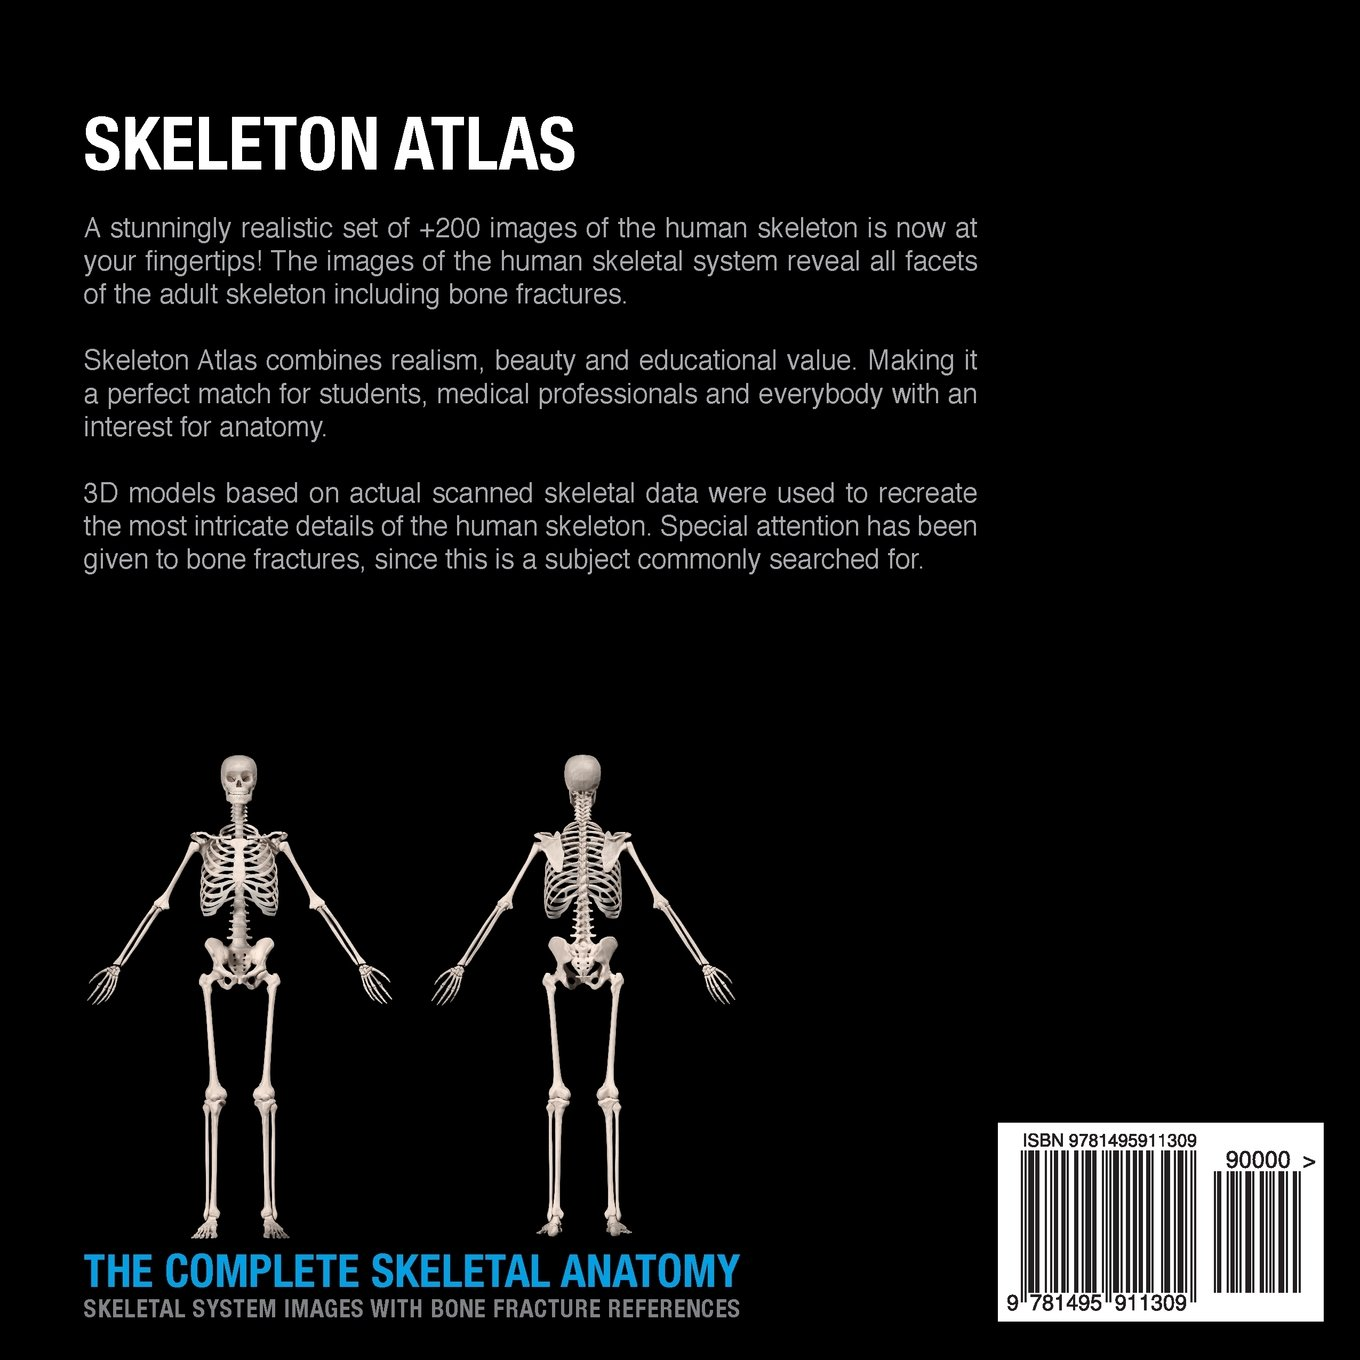 Skeleton atlas the complete skeletal anatomy skeletal system skeleton atlas the complete skeletal anatomy skeletal system images with bone fracture references david marchal 9781495911309 amazon books fandeluxe